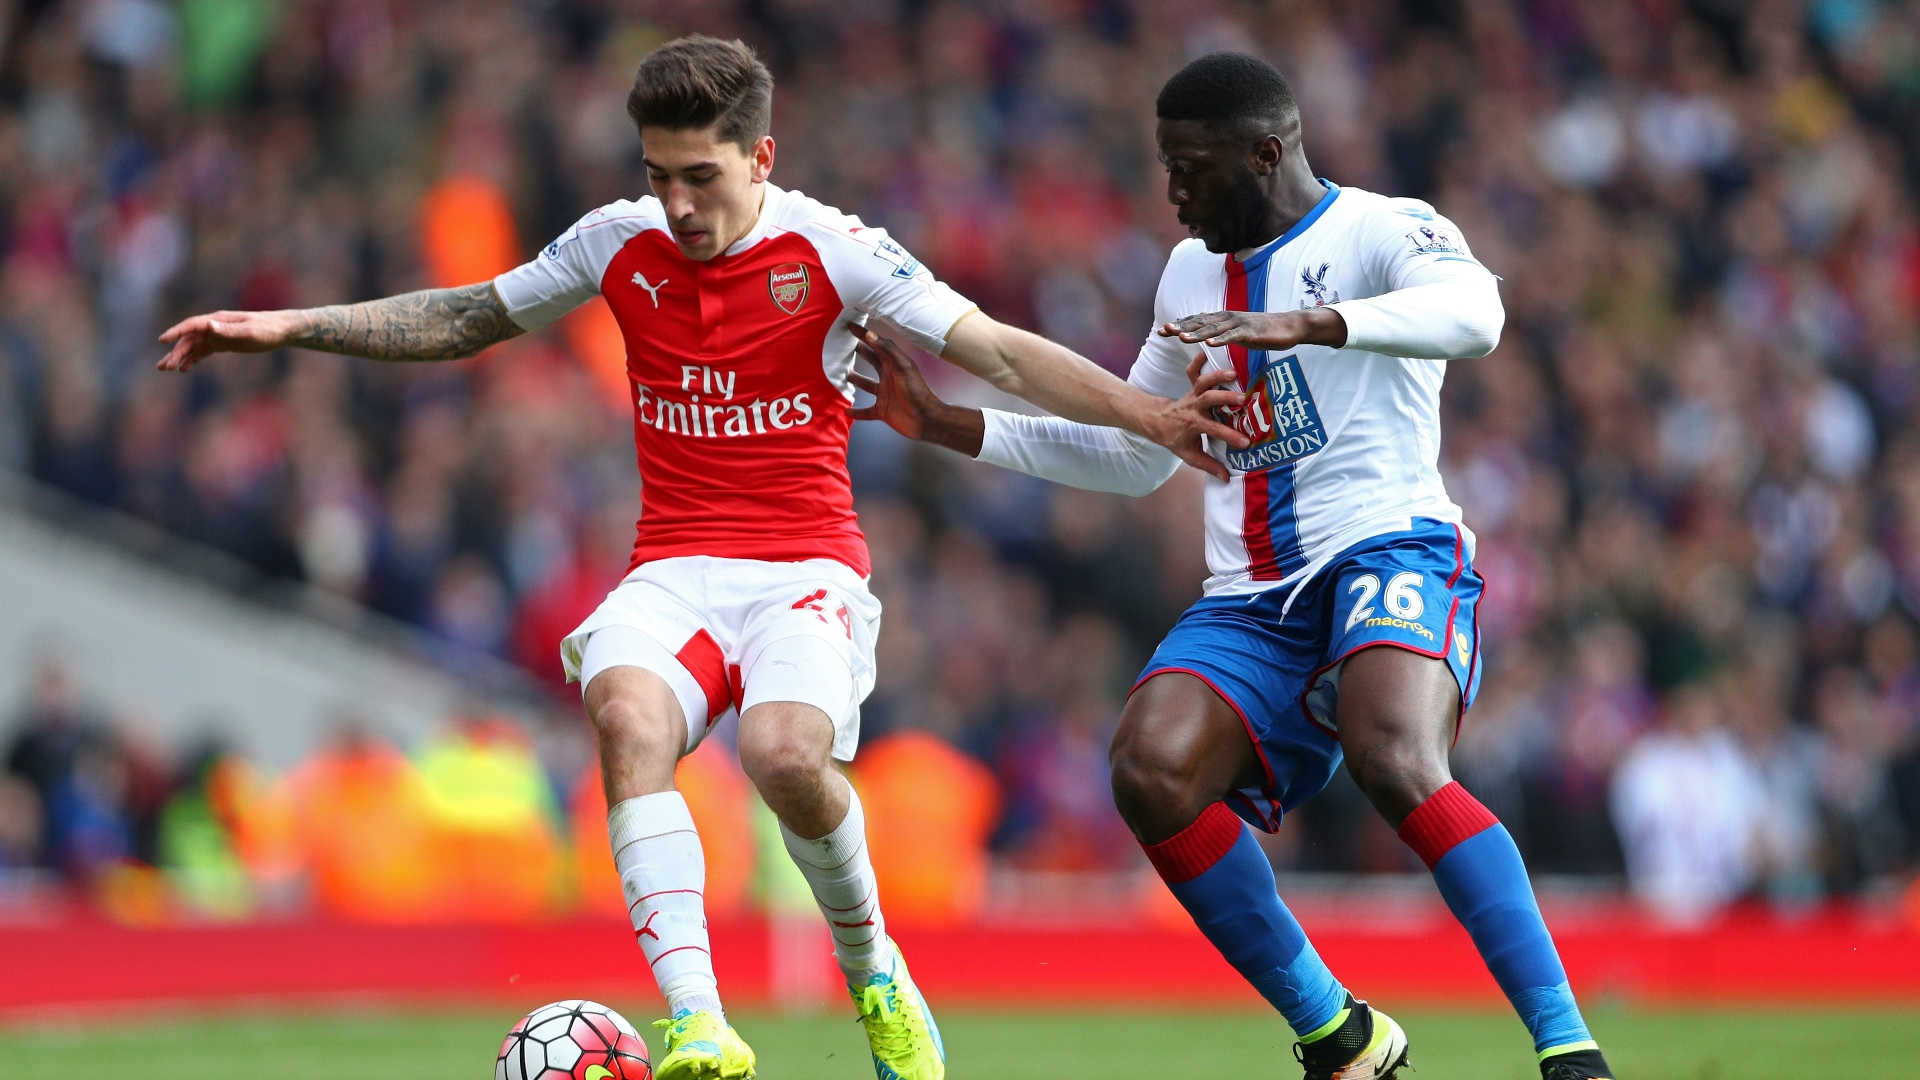 Video: Arsenal vs Crystal Palace